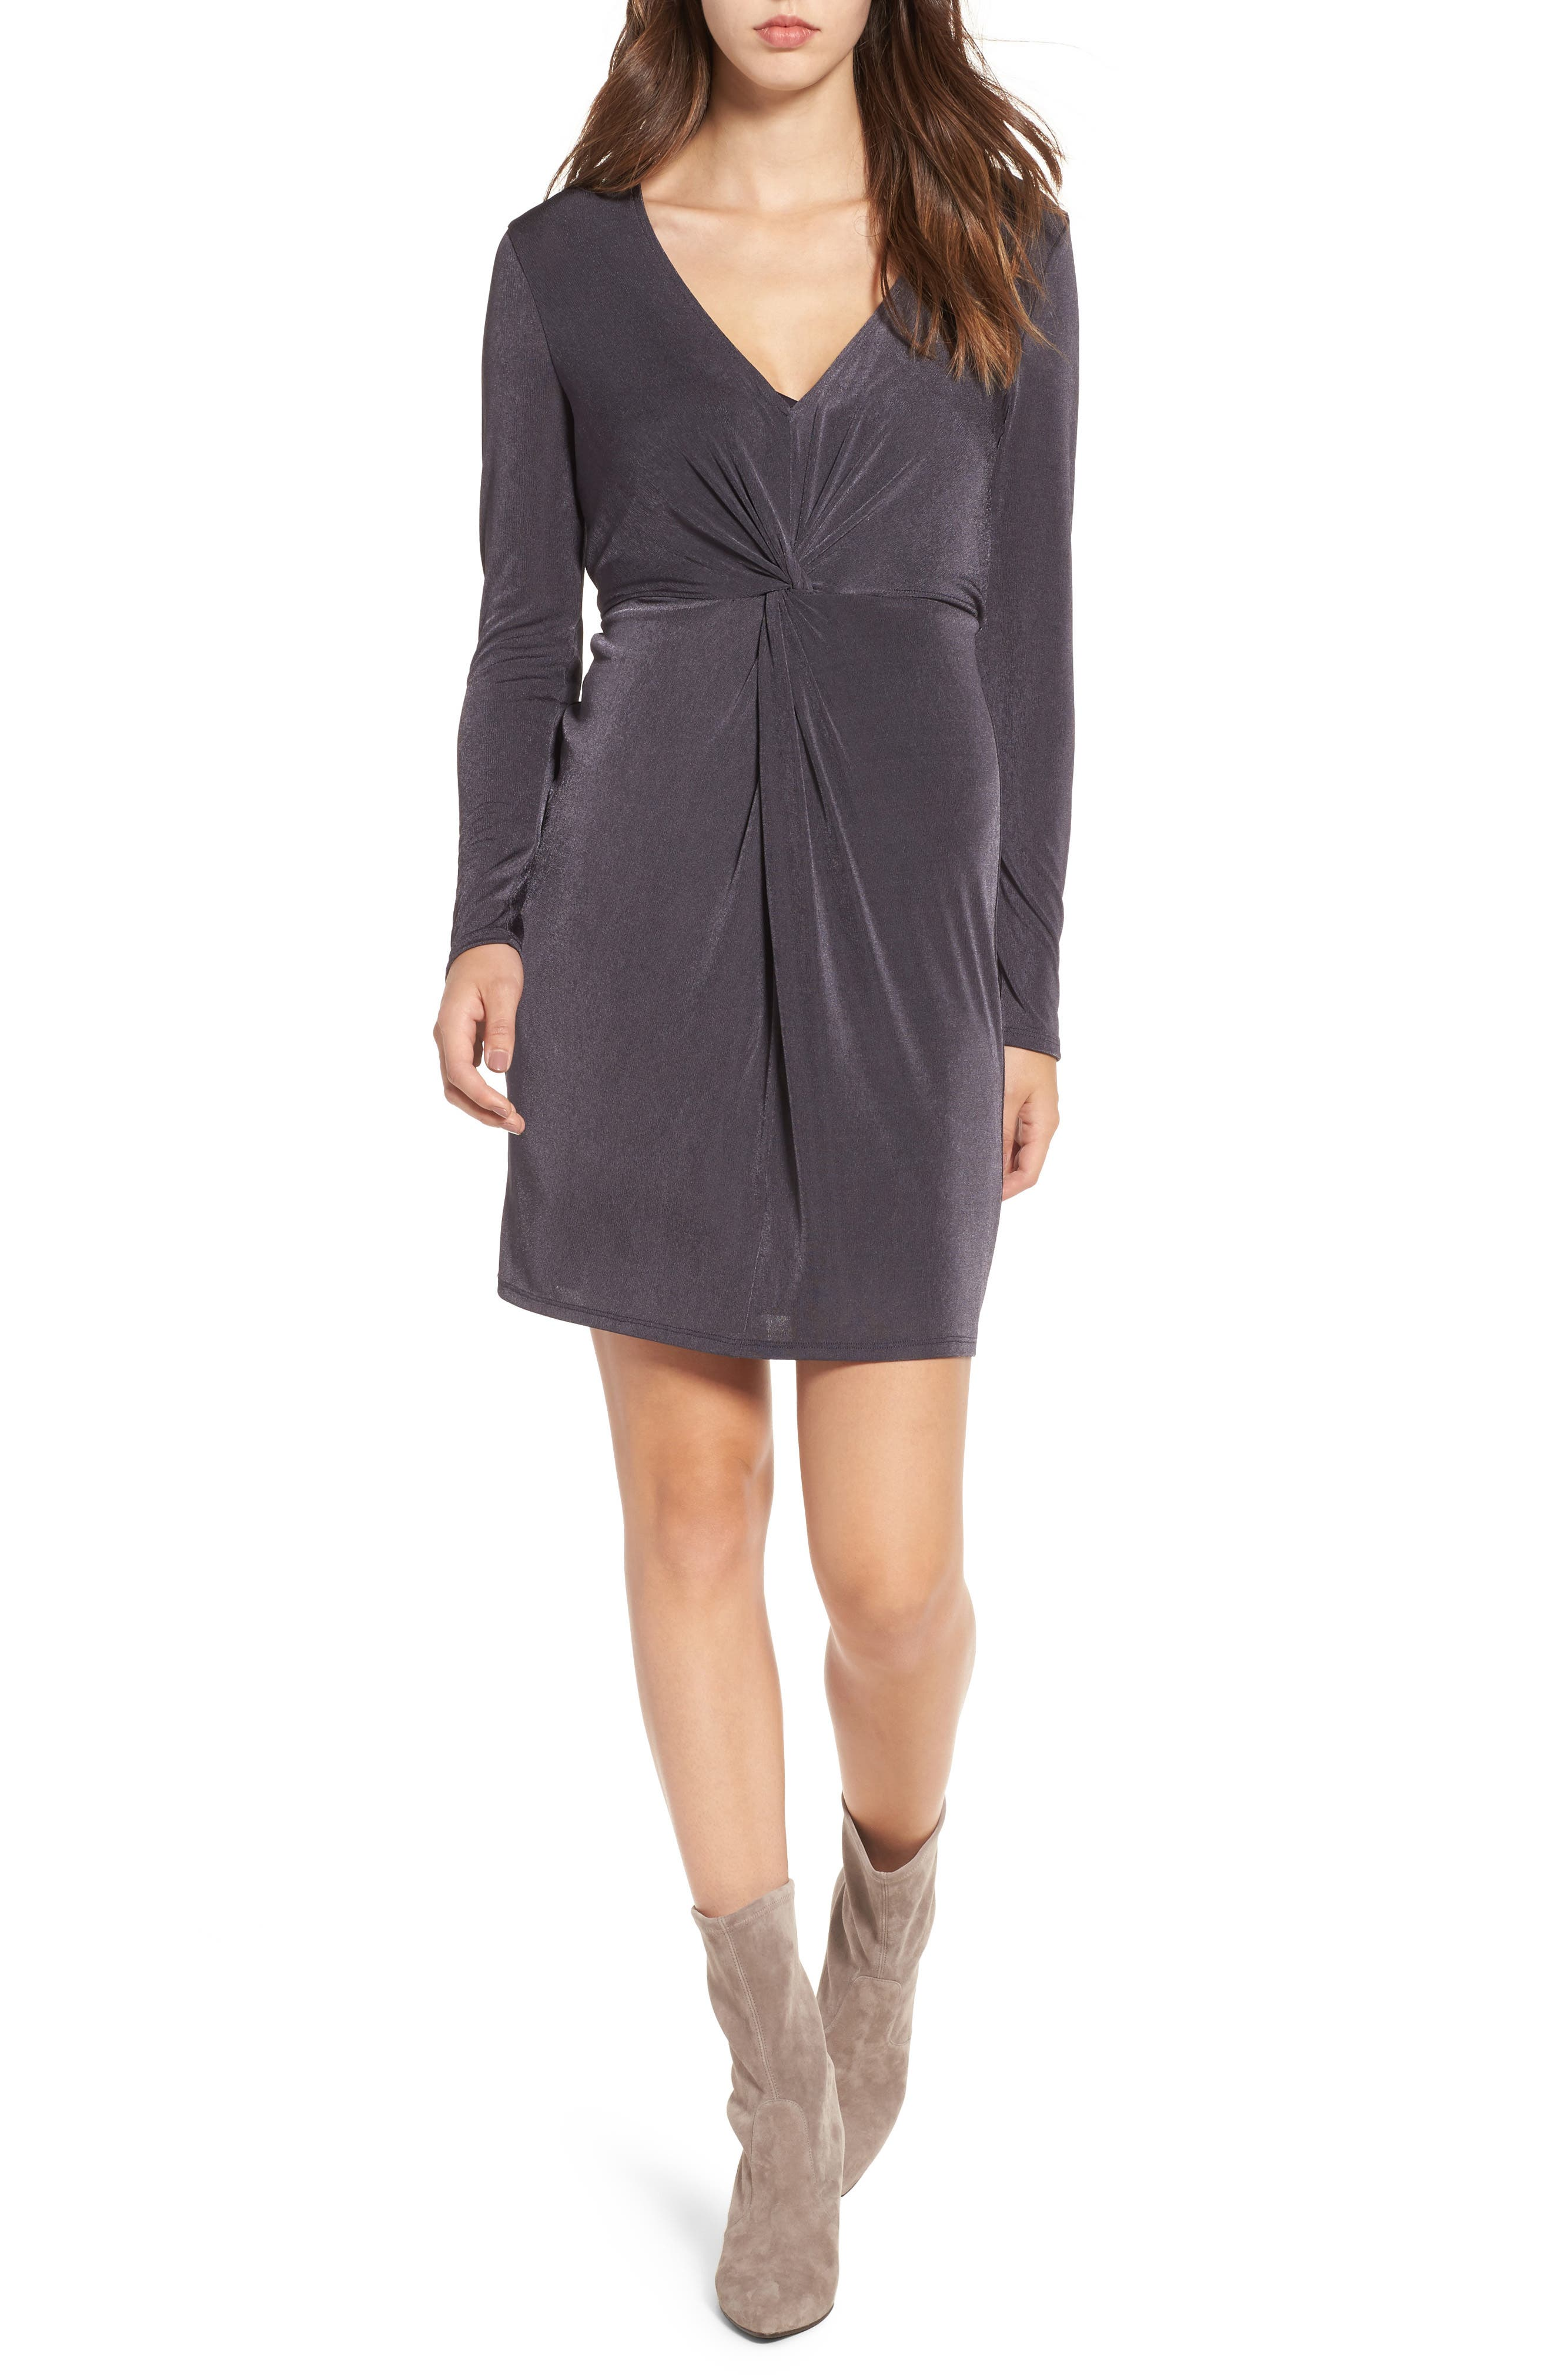 Alternate Image 1 Selected - STOREE Twist Front Knit Dress